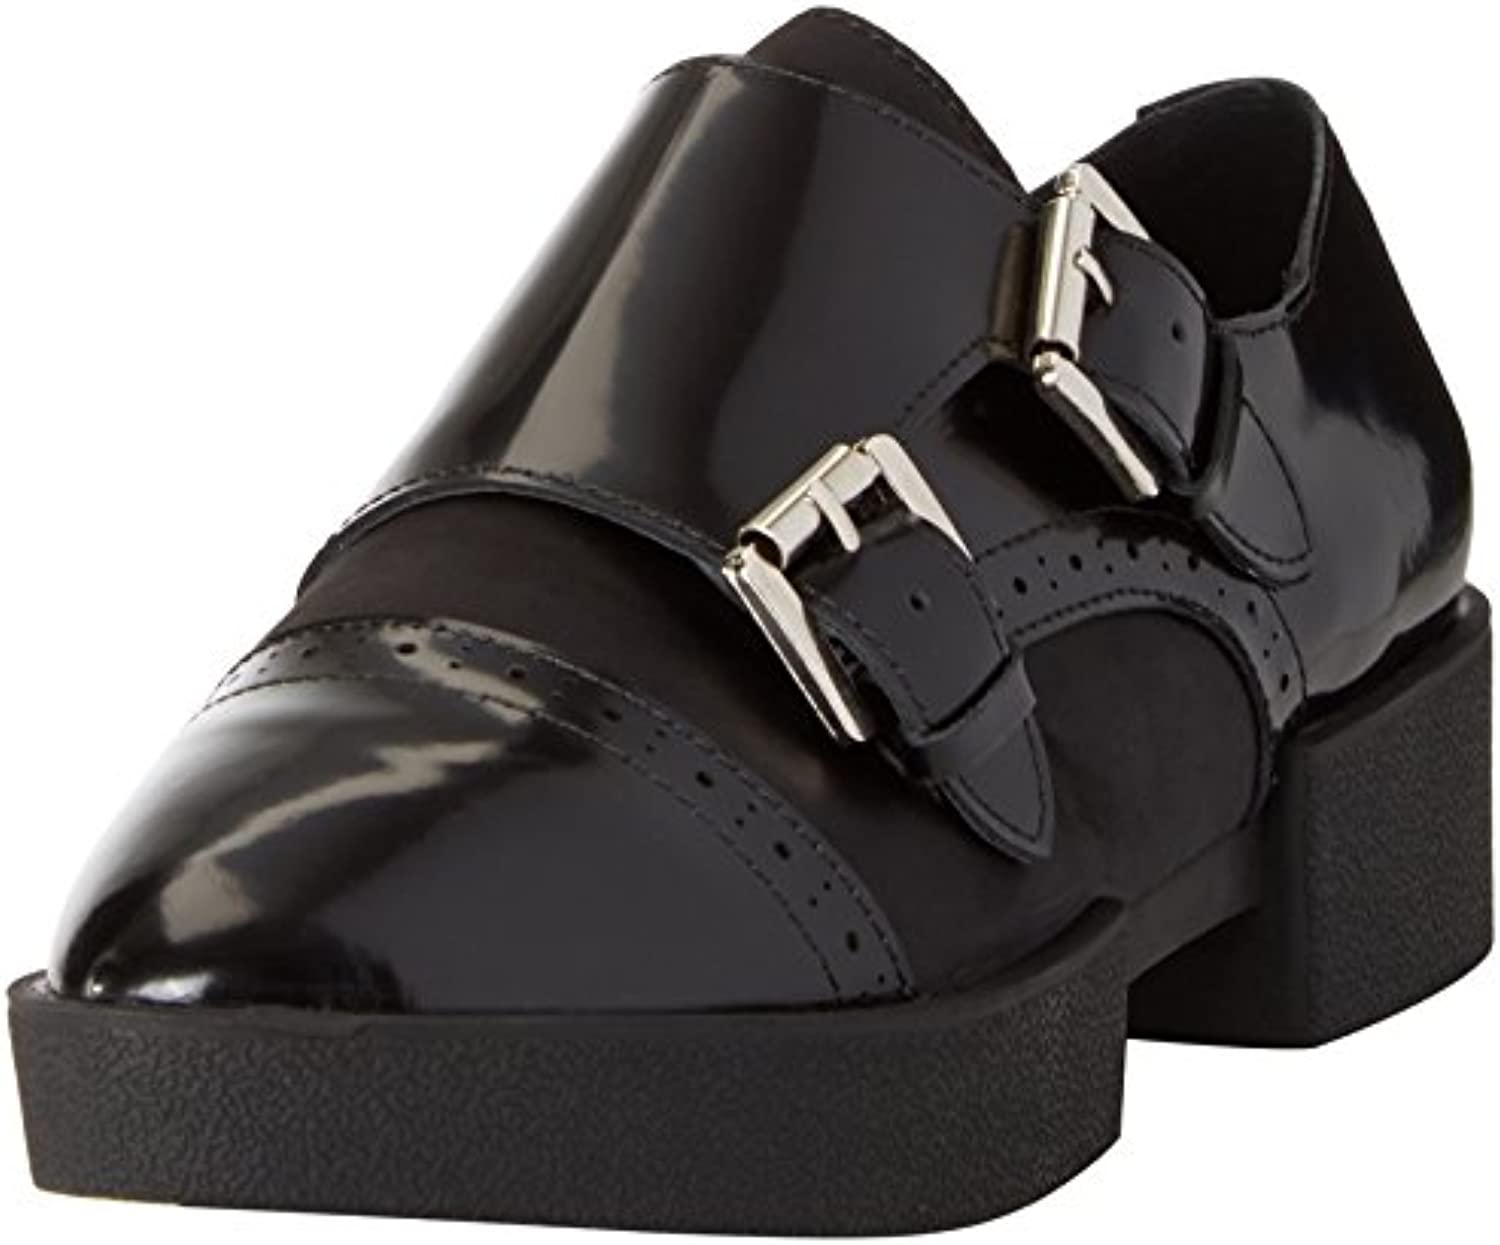 Rxcodbe Victor Satin En Jeffrey Leachaussures Campbell fv6gI7mYby